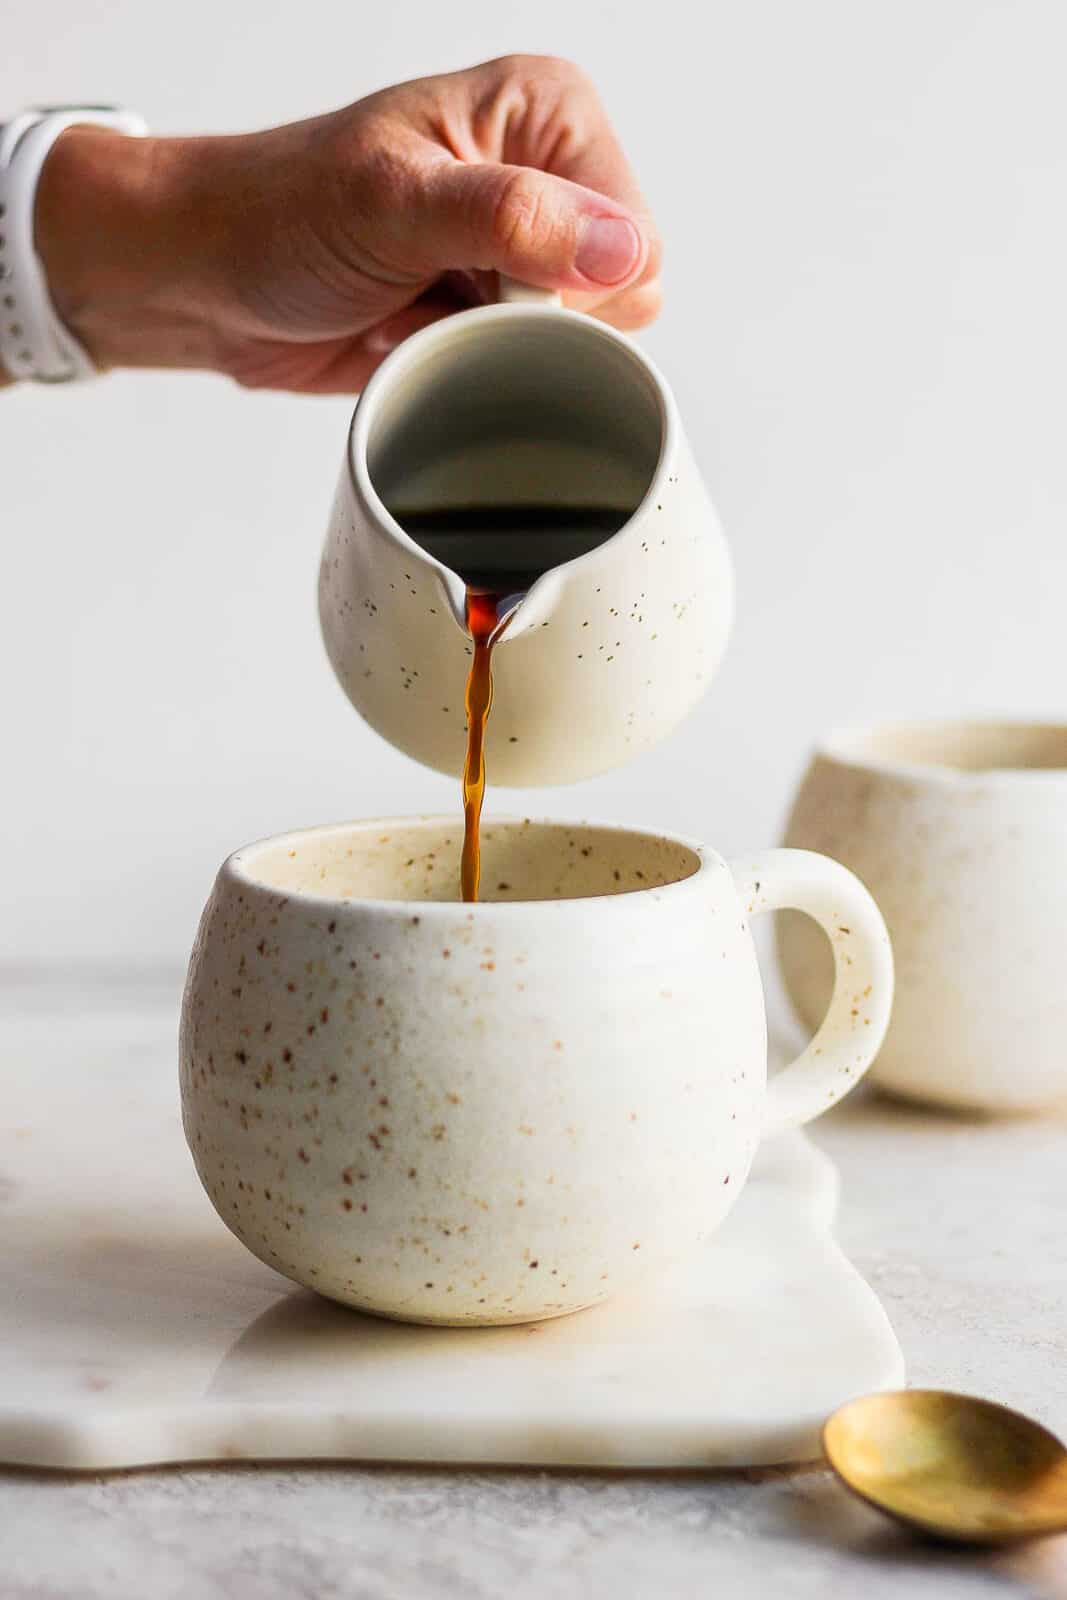 Coffee being poured into a mug.